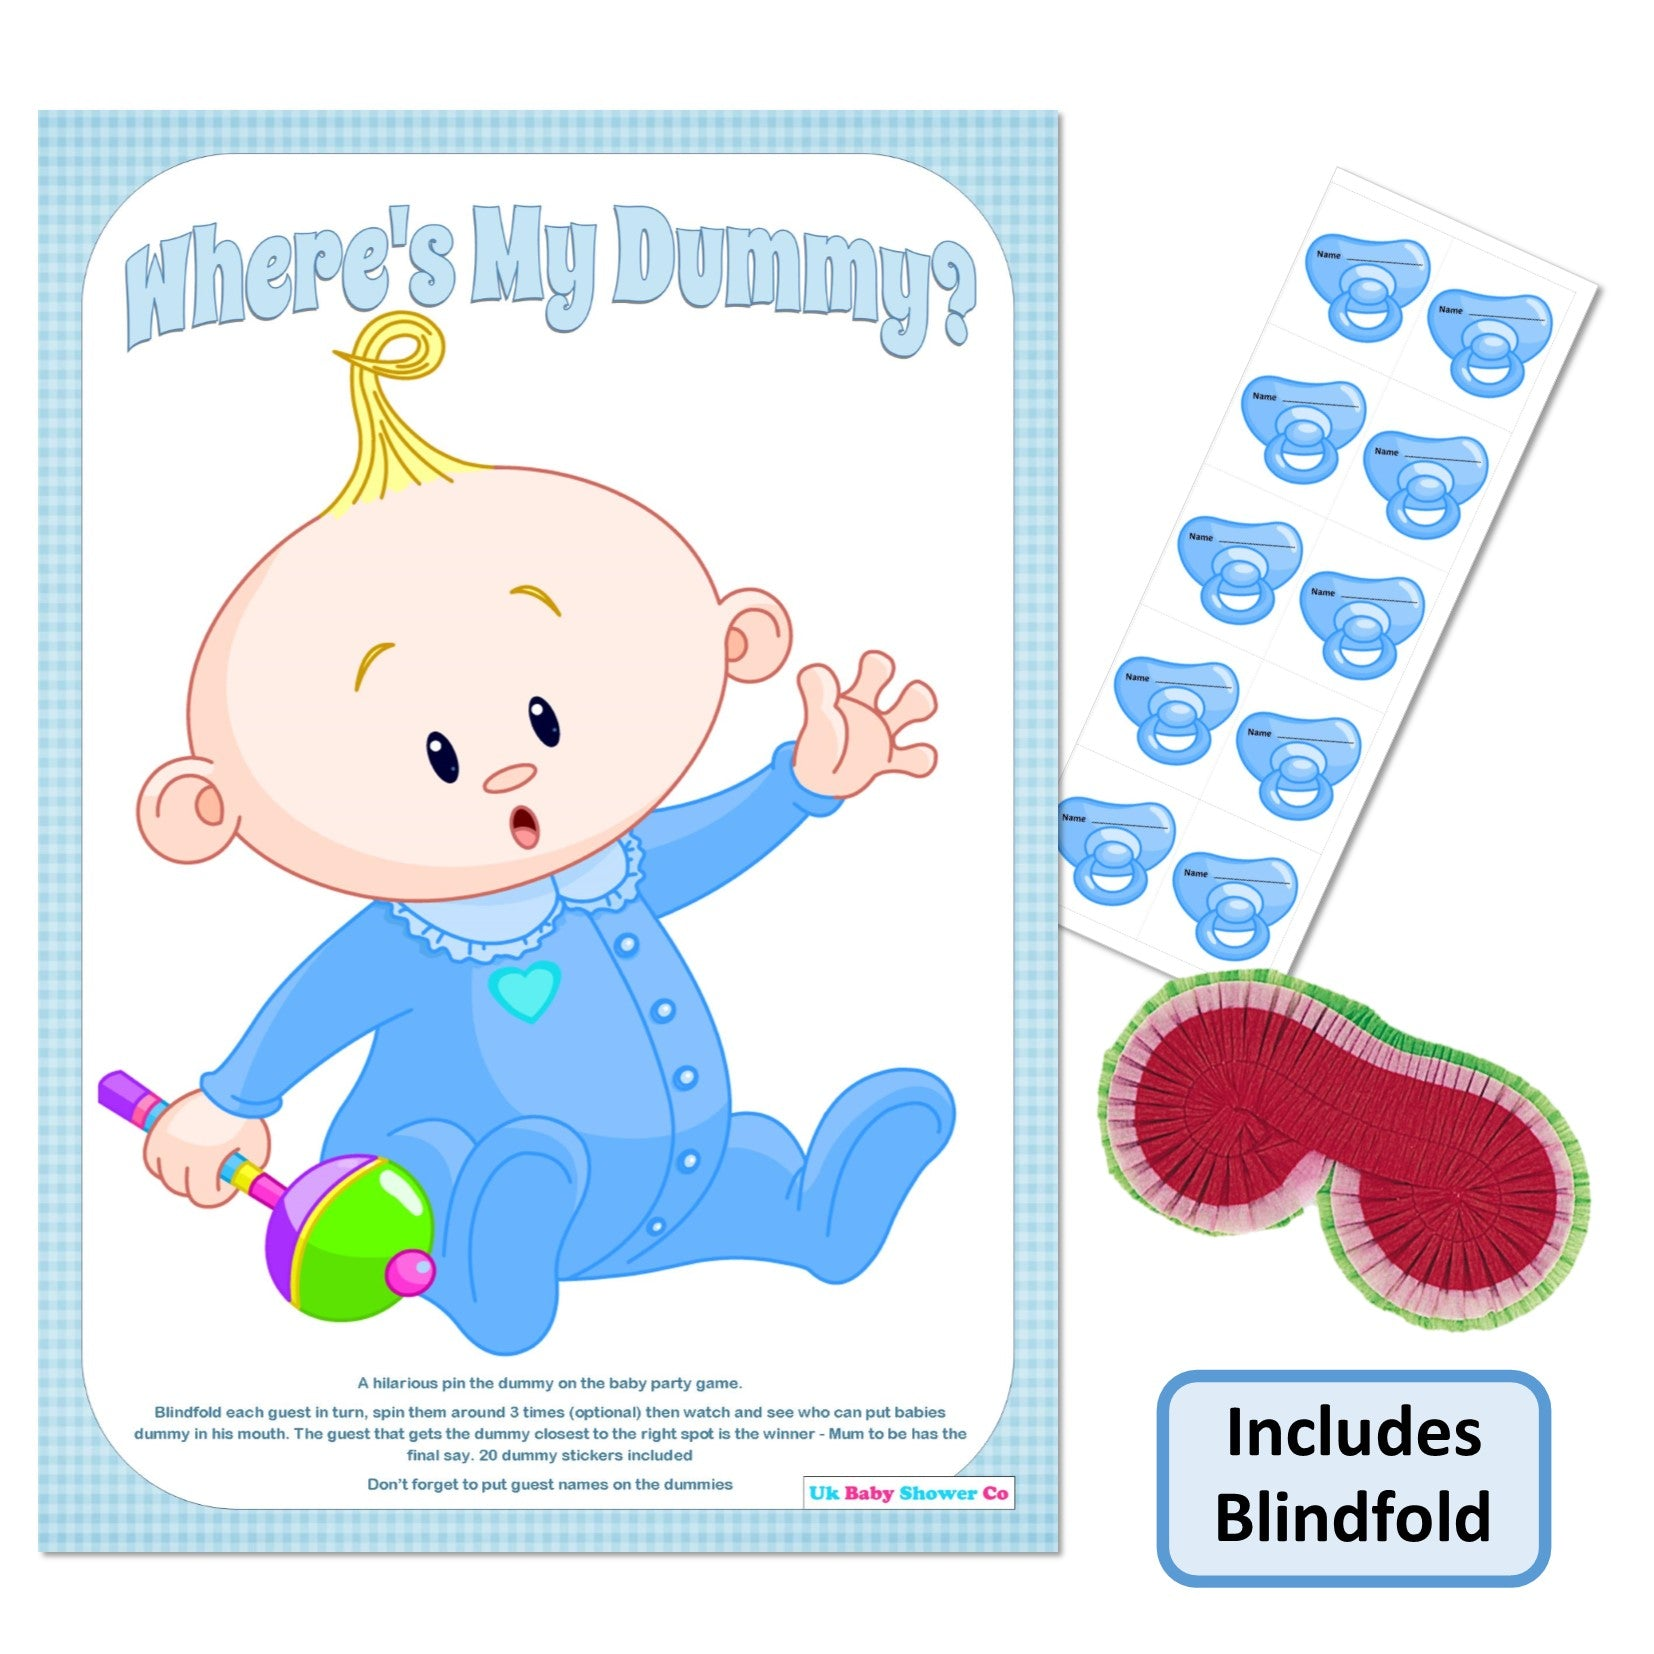 Uk Baby Shower Co: Pin The Dummy Game - Where's My Dummy!